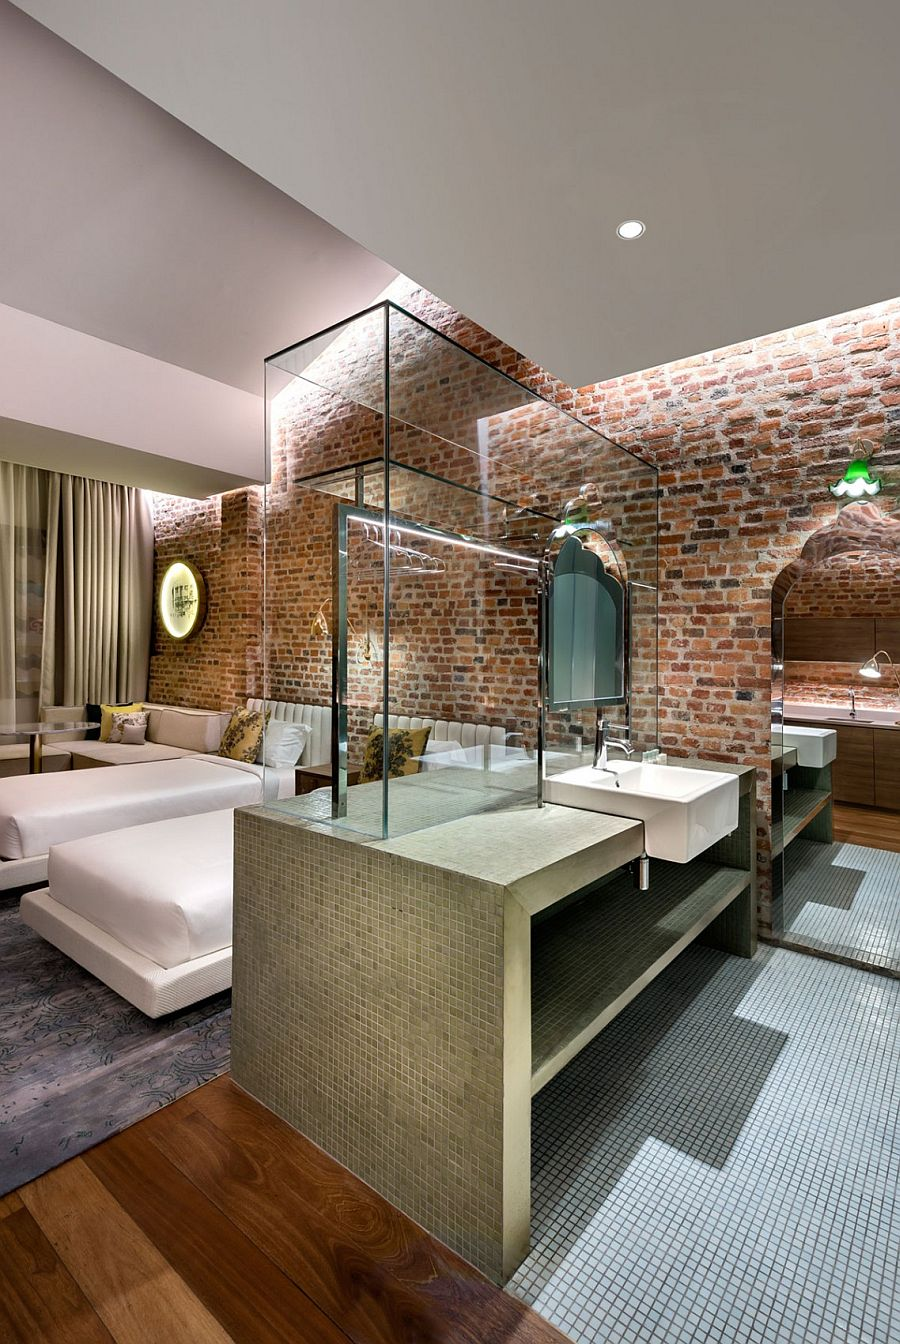 Glass and stone additions inside the suites make minimum change to the existing walls